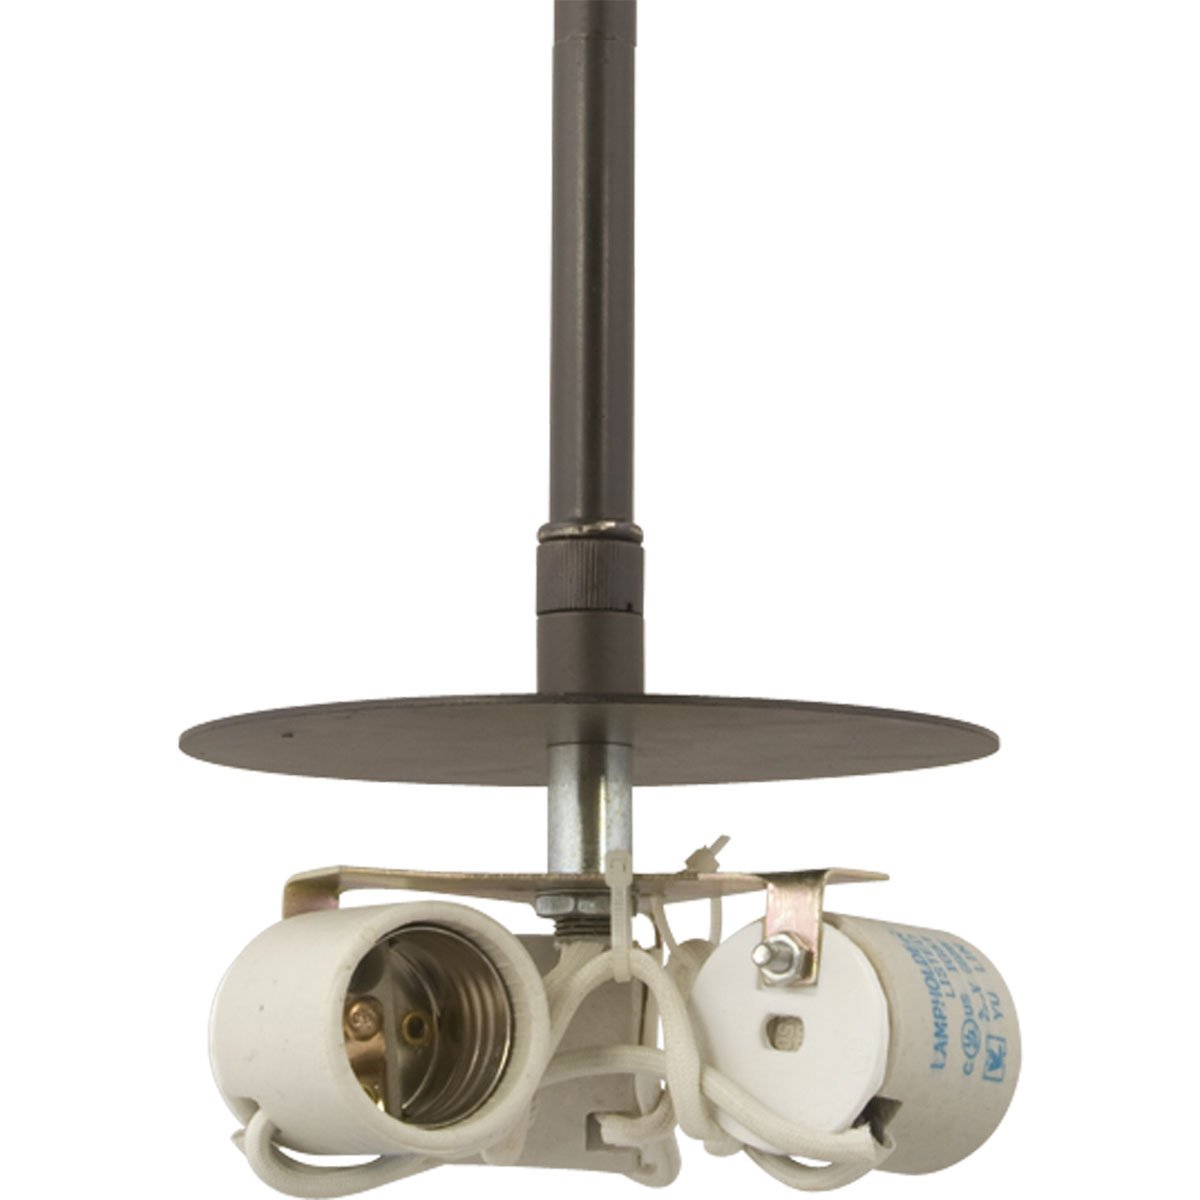 used pendant lighting. progress lighting p519909 3light stem mounted pendant used with markor or chloe shades for complete fixture brushed nickel ceiling fixtures